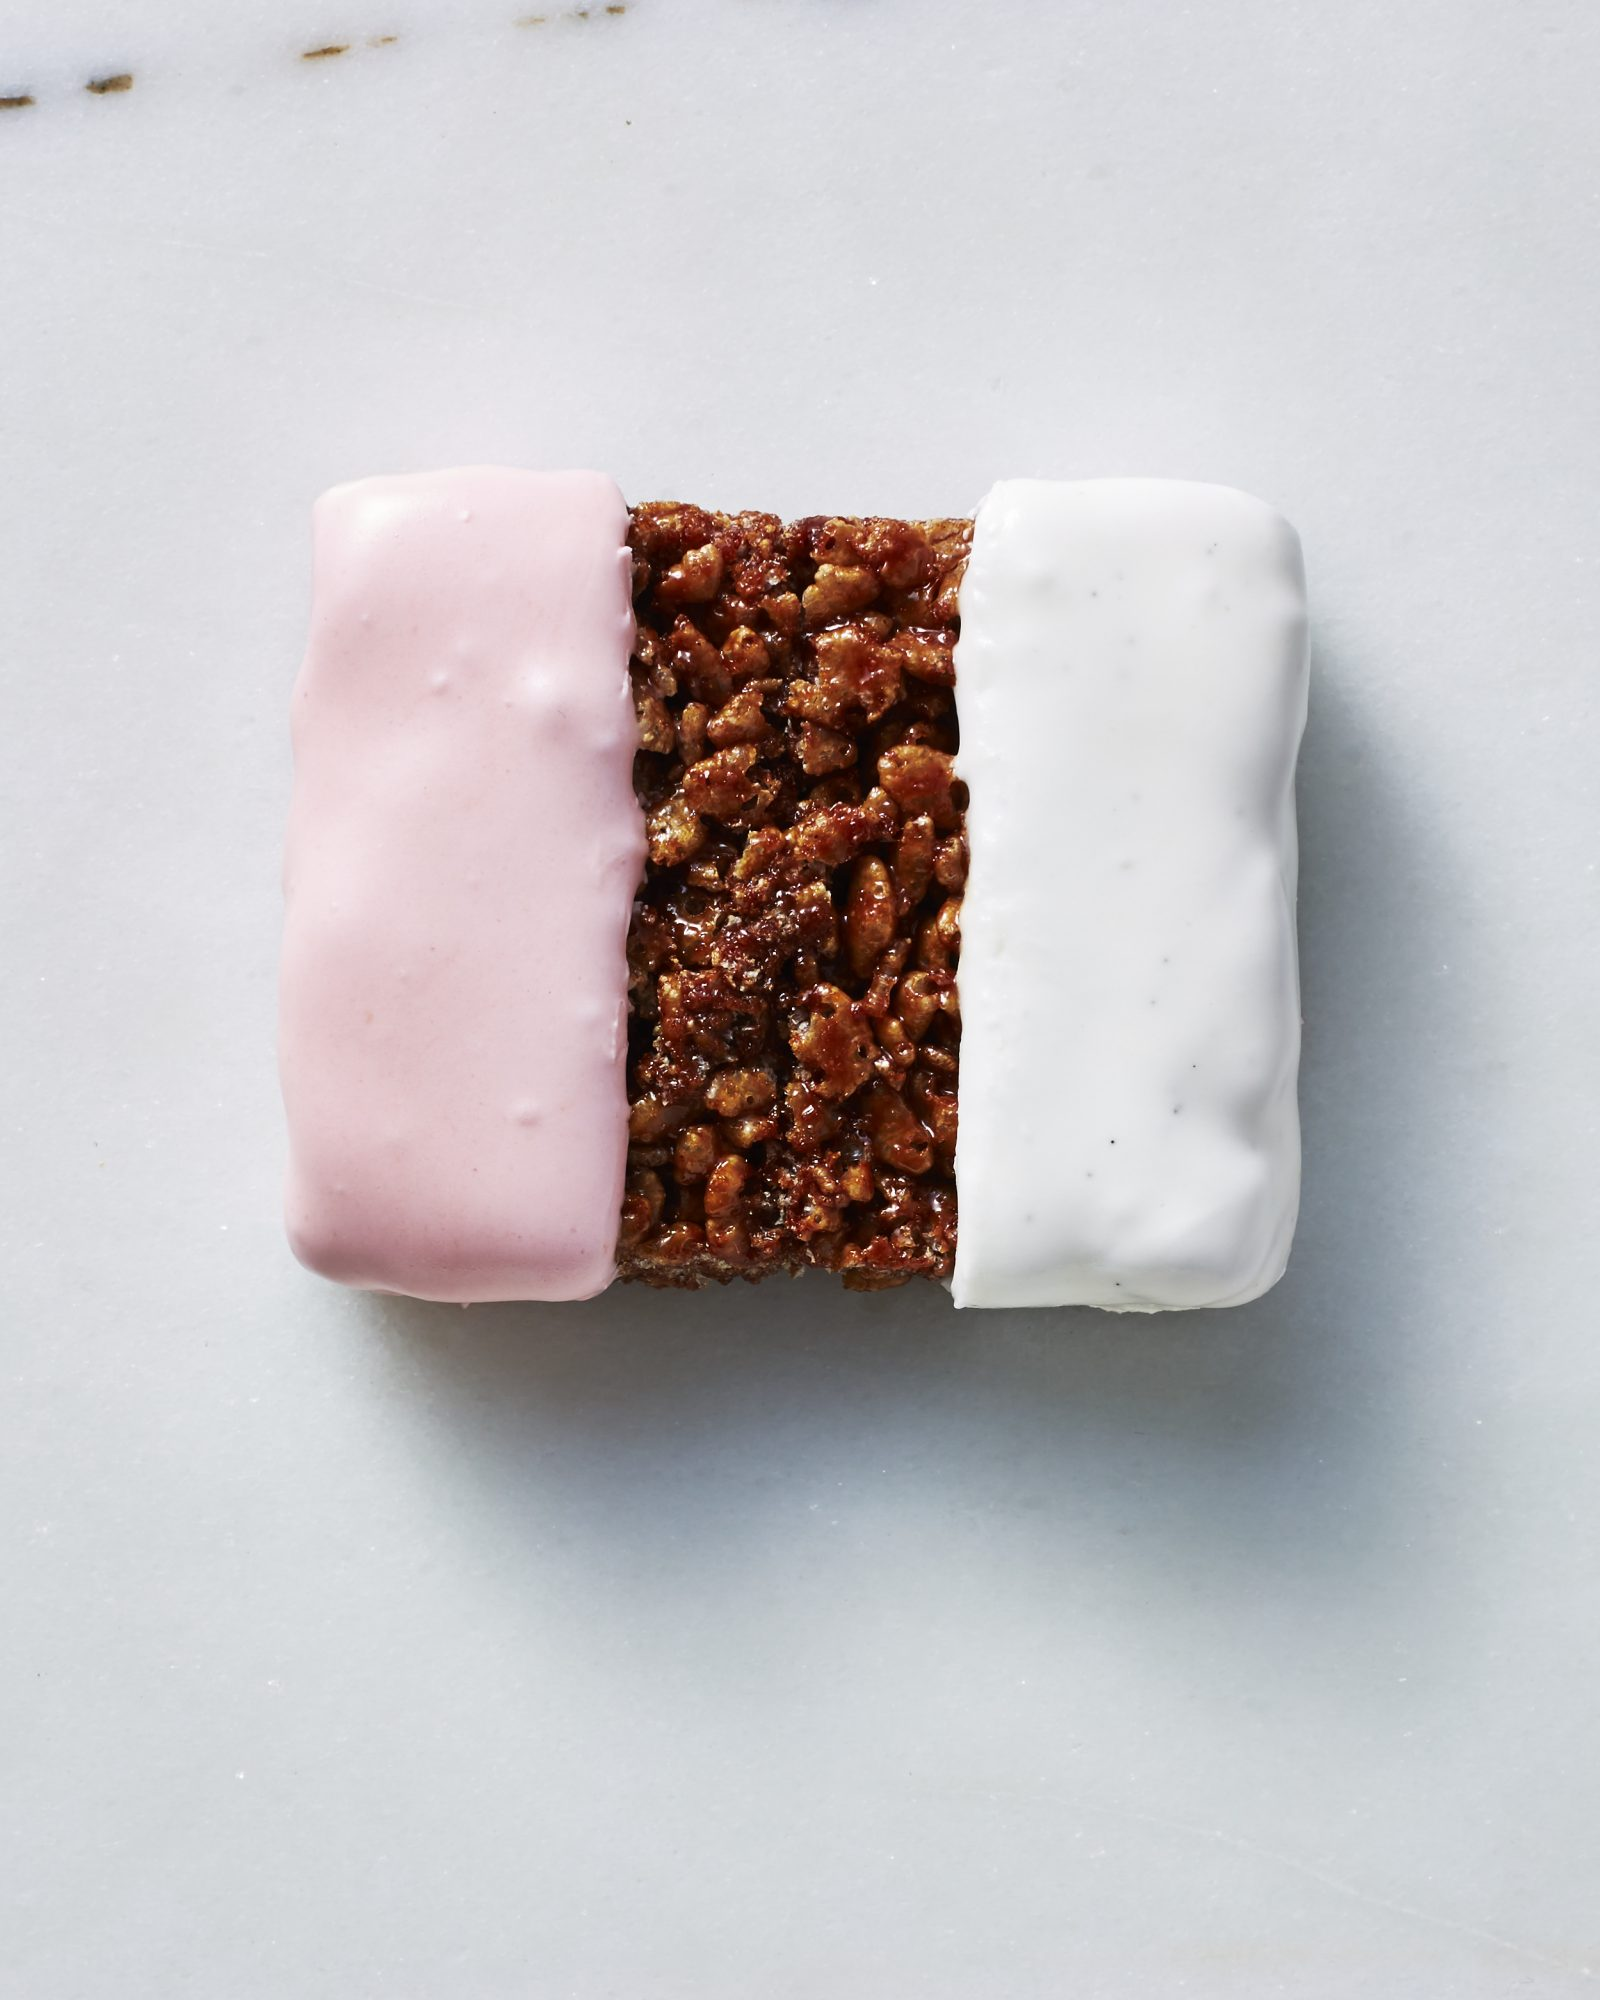 Neapolitan Chocolate Crispy Rice Treats